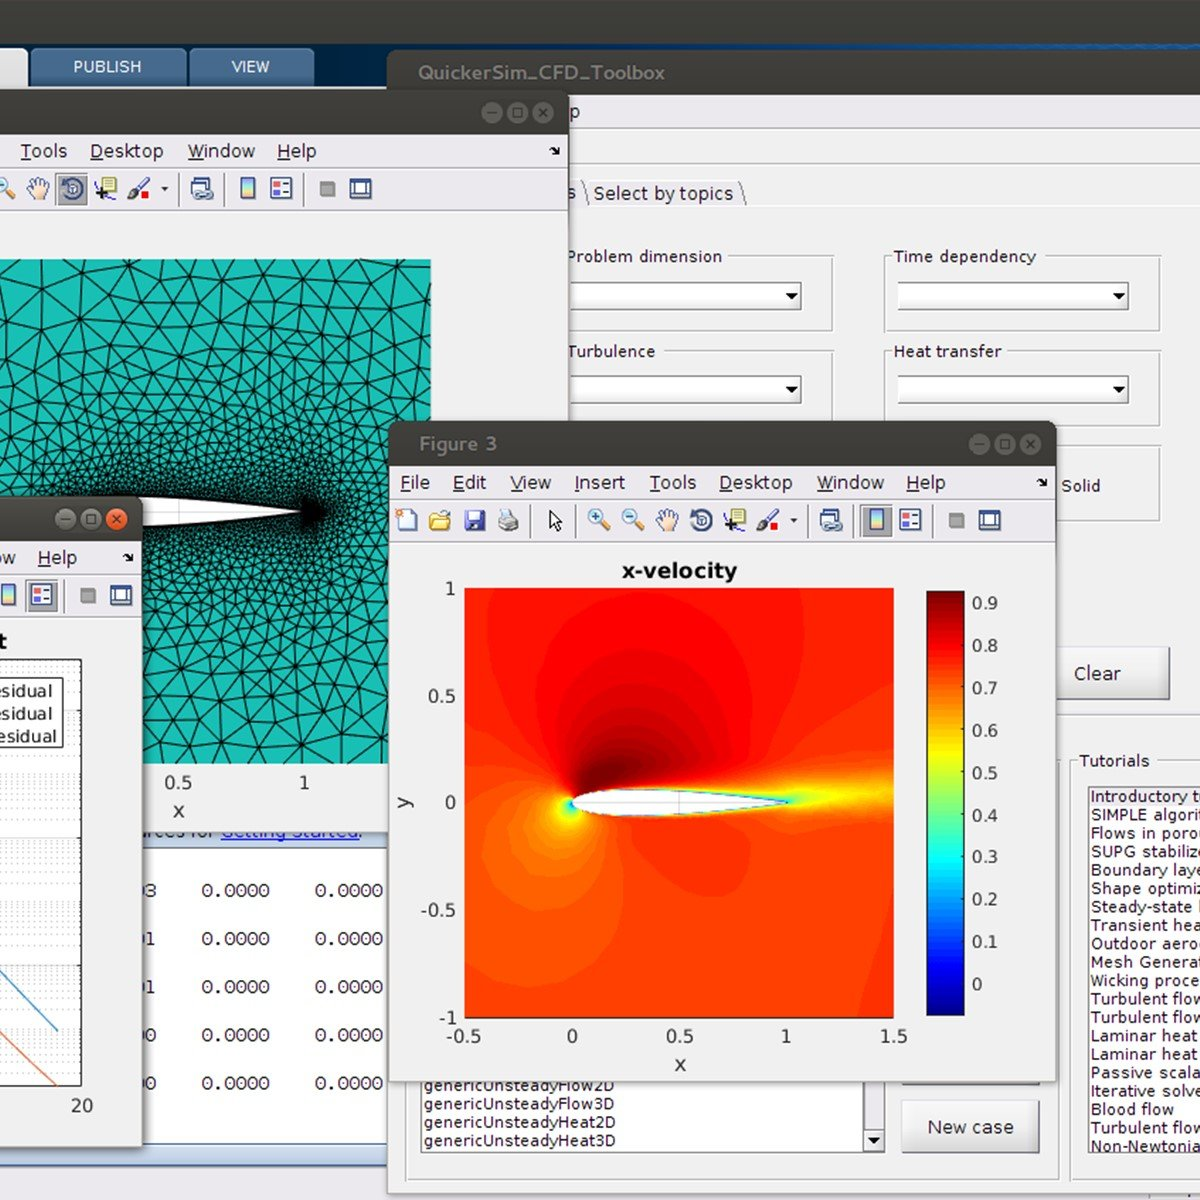 QuickerSim CFD Toolbox for MATLAB® Alternatives and Similar Software